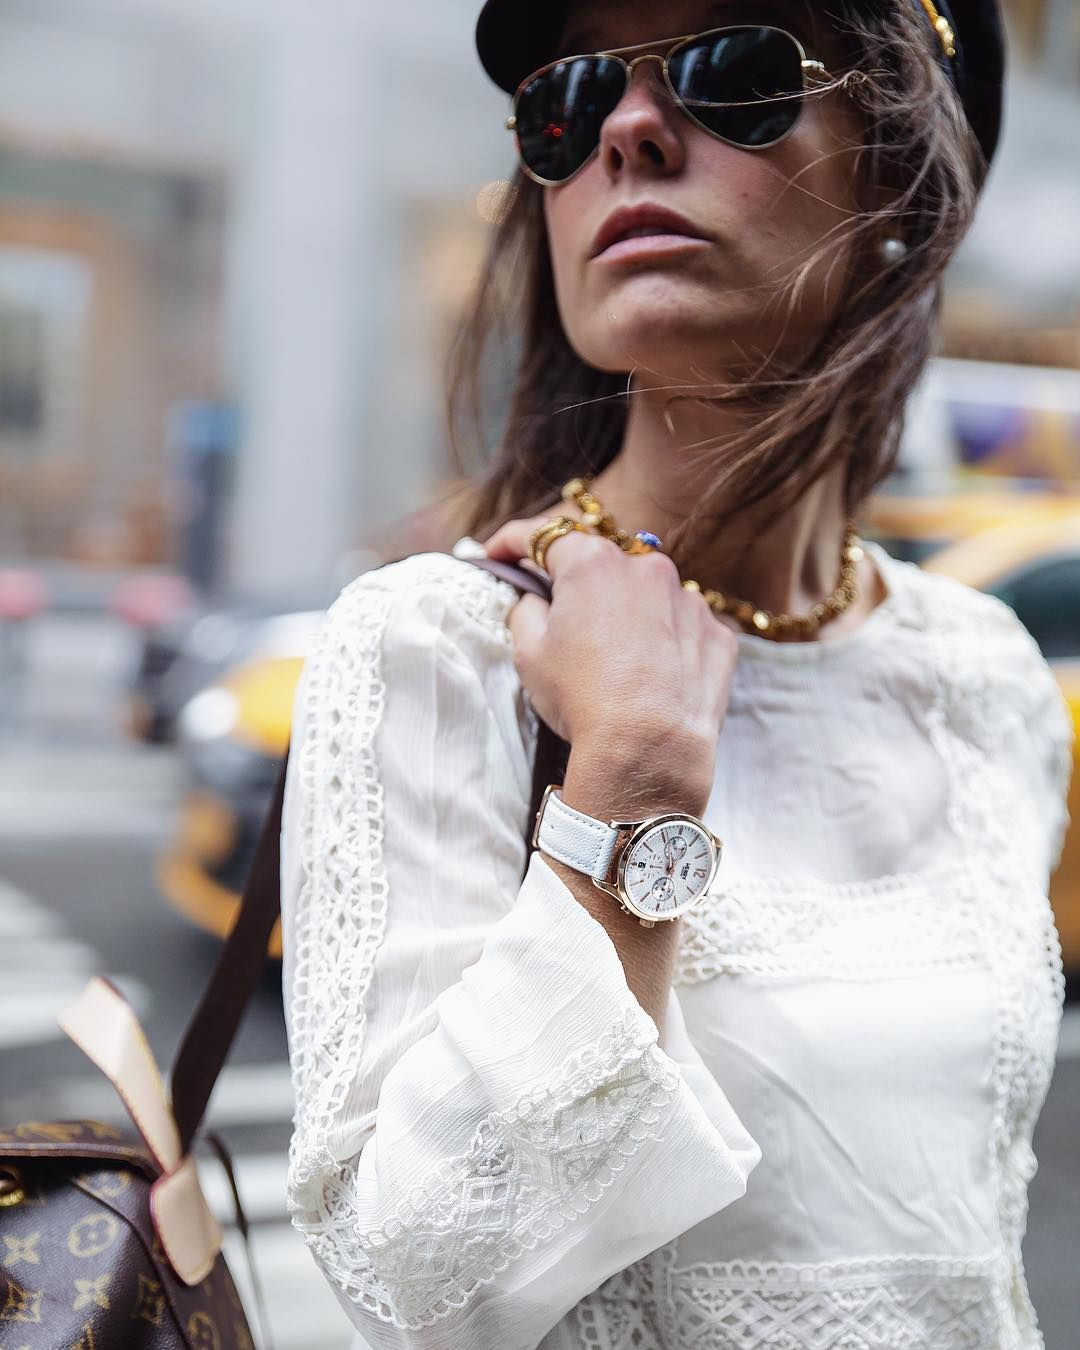 Laura Santolaria of 'The Guest Girl' blog styles up her Pimlico Henry London watch in NYC